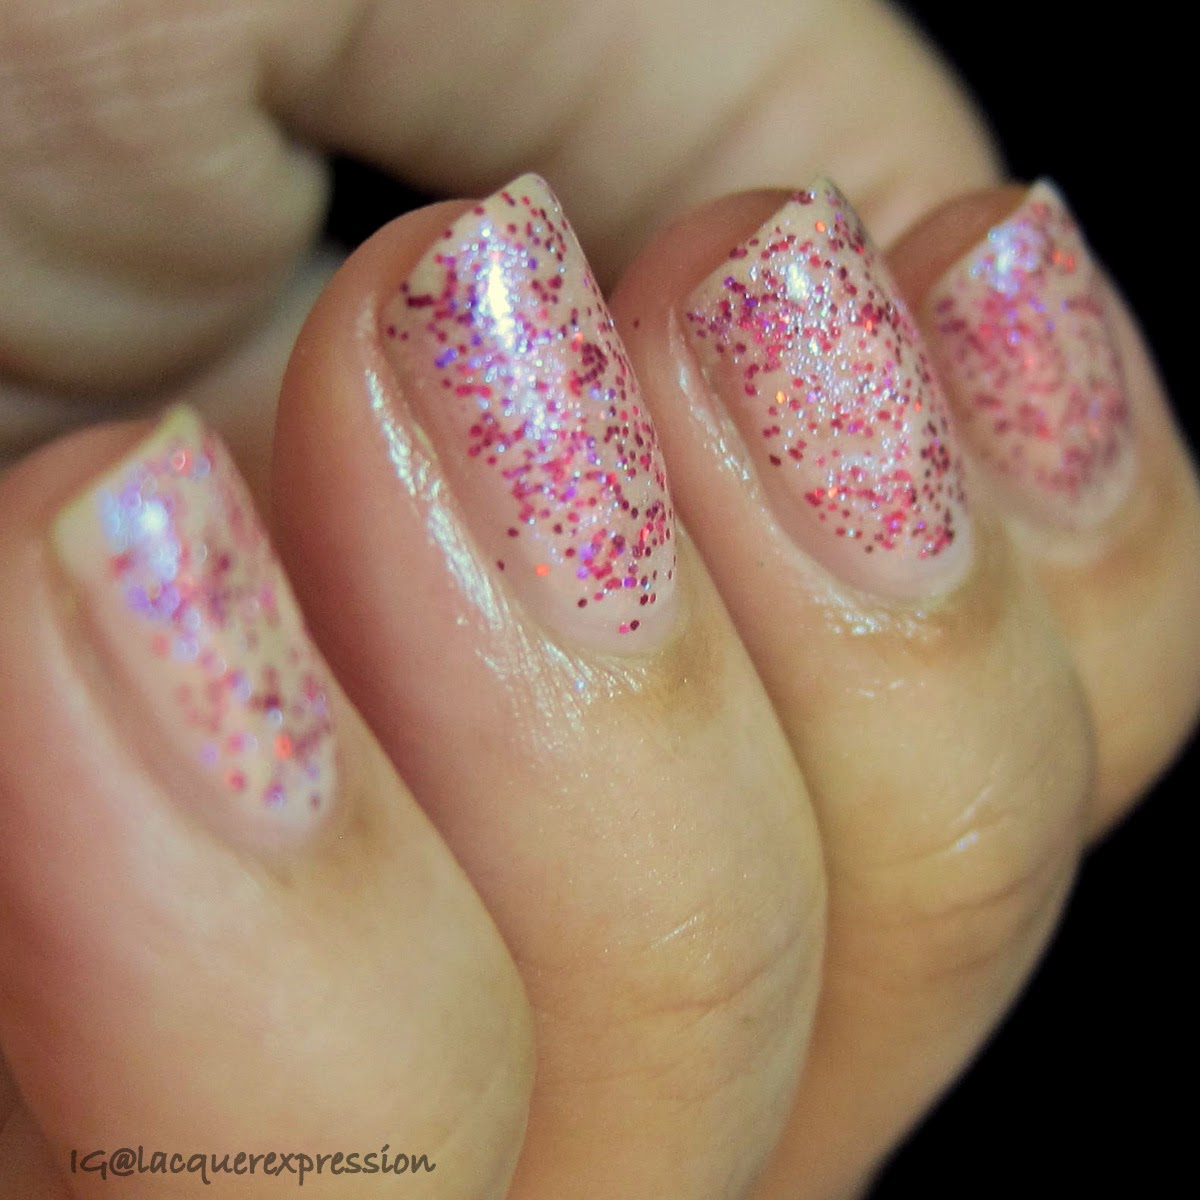 swatch of explosion of fun nail polish by orly